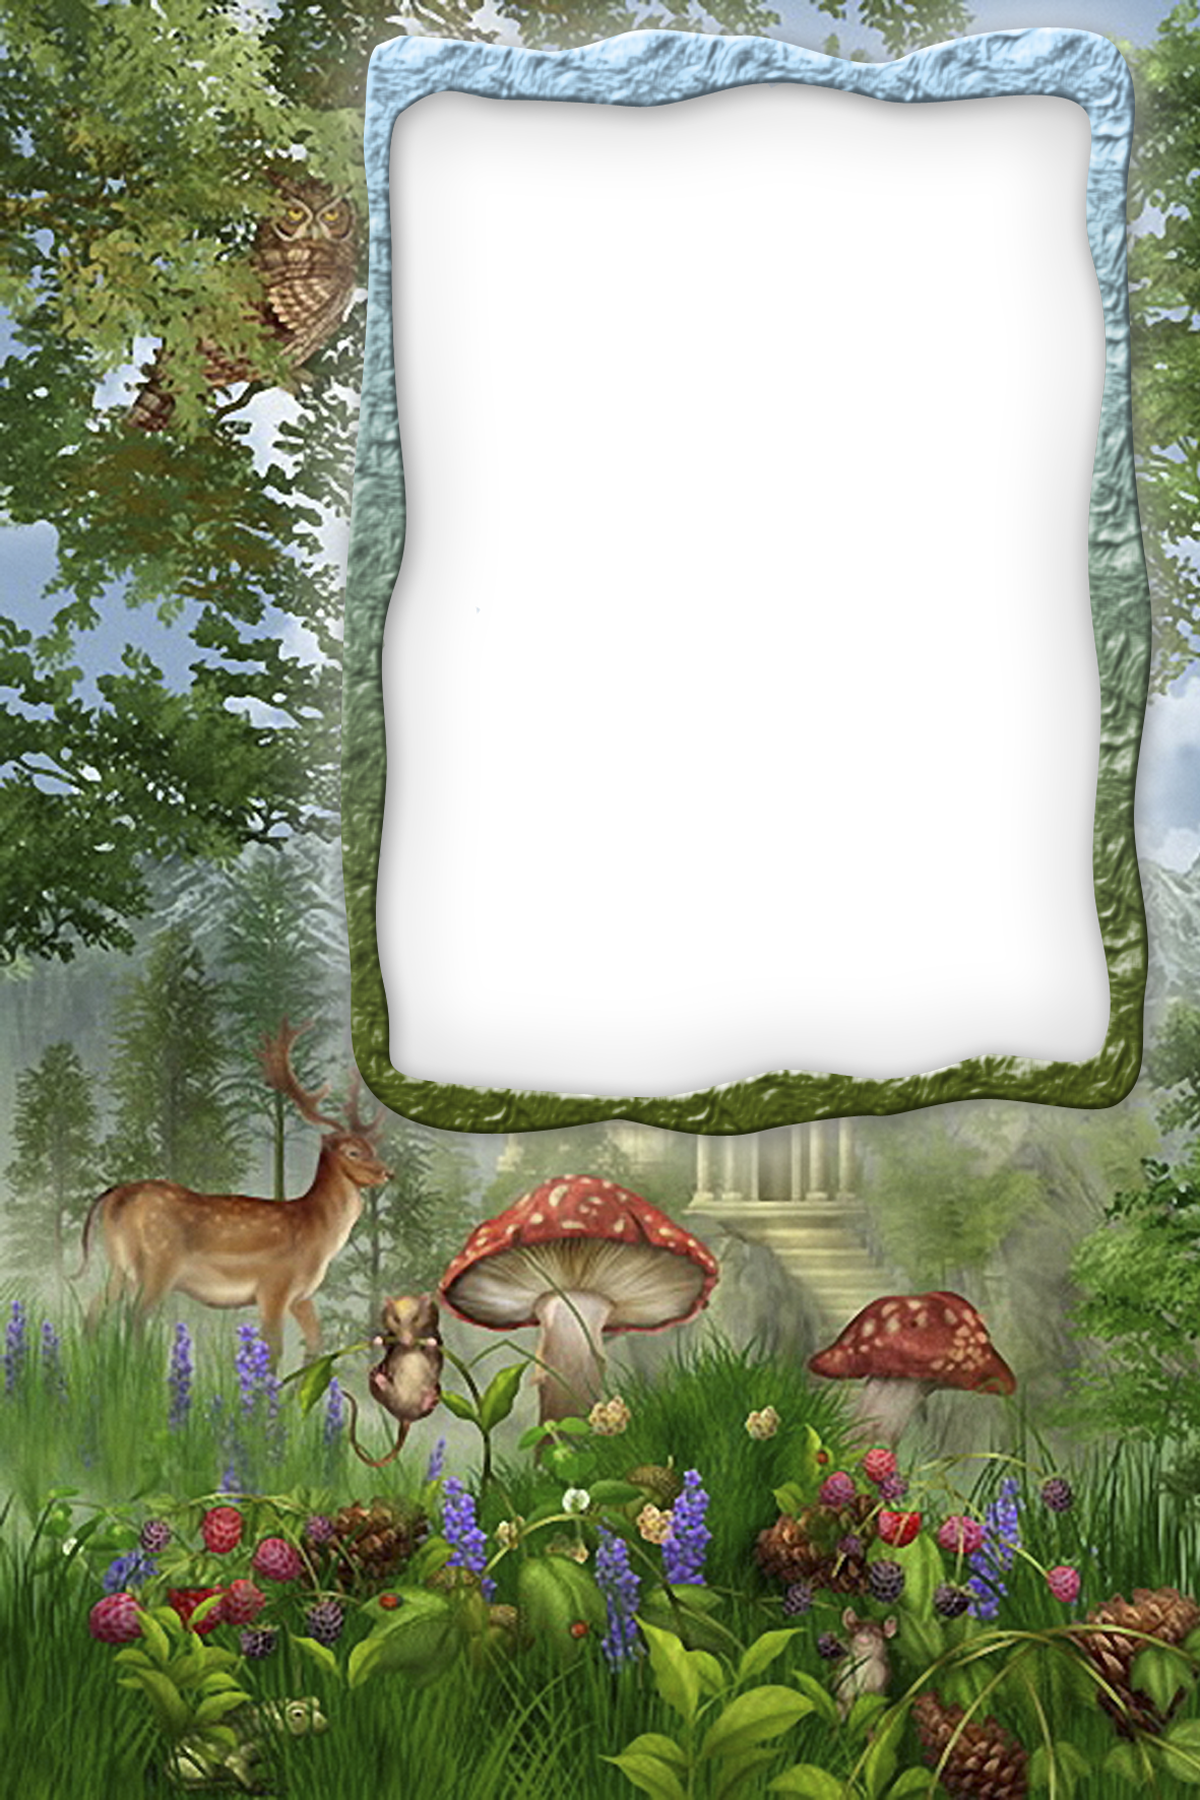 Transparent frame gallery yopriceville. Forest clipart forest border jpg black and white